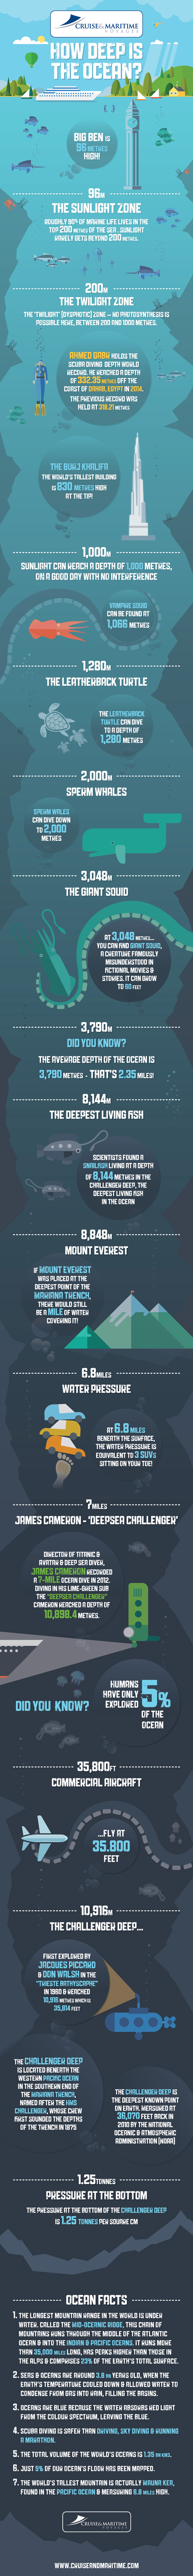 Colossal Facts About the Oceans - Infographic